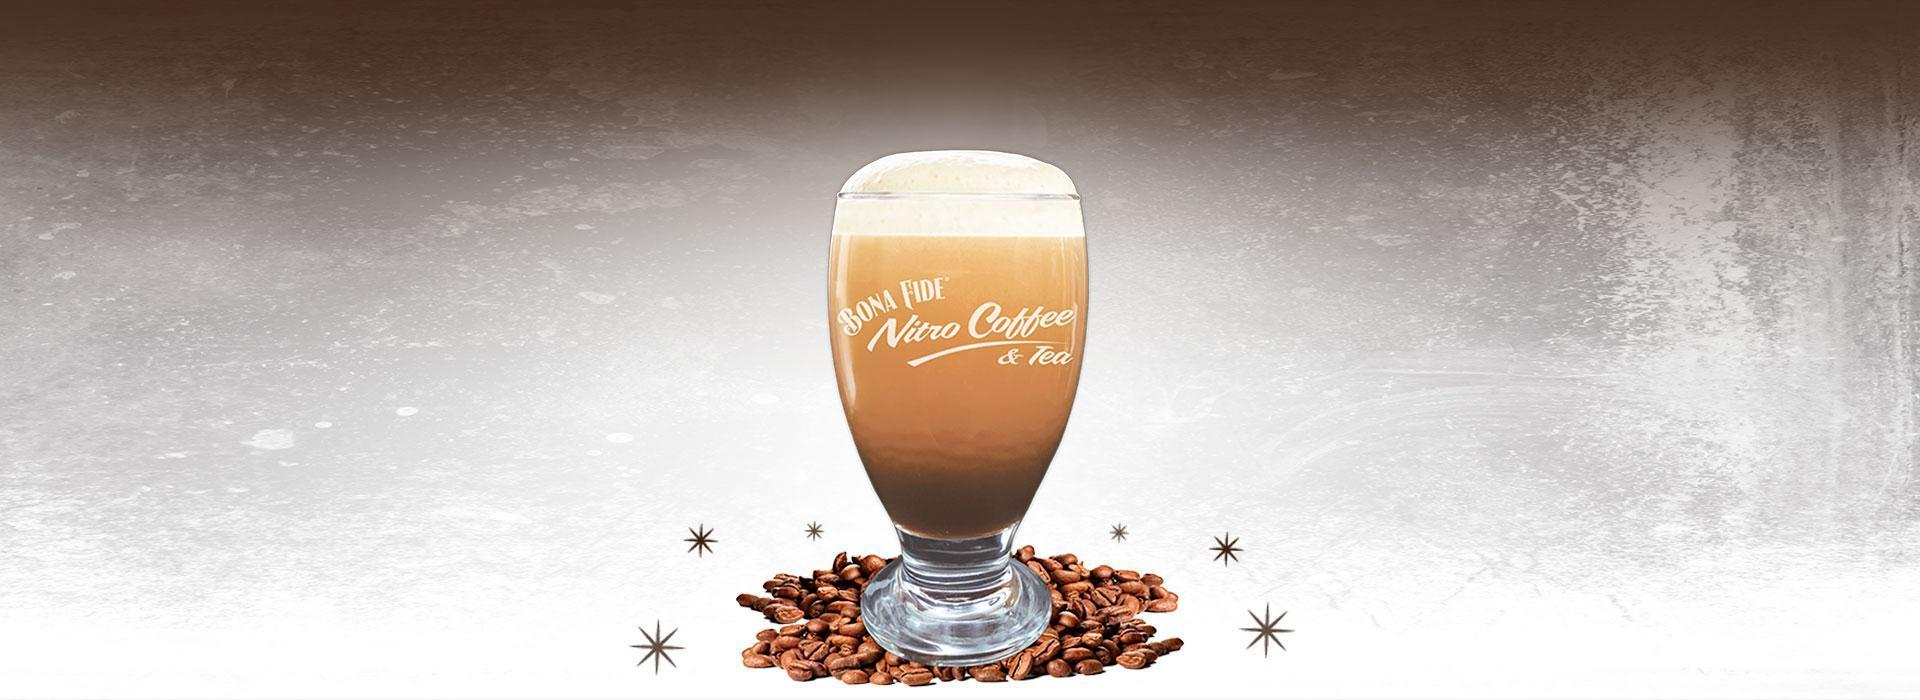 Nitro Coffee in glass with beans